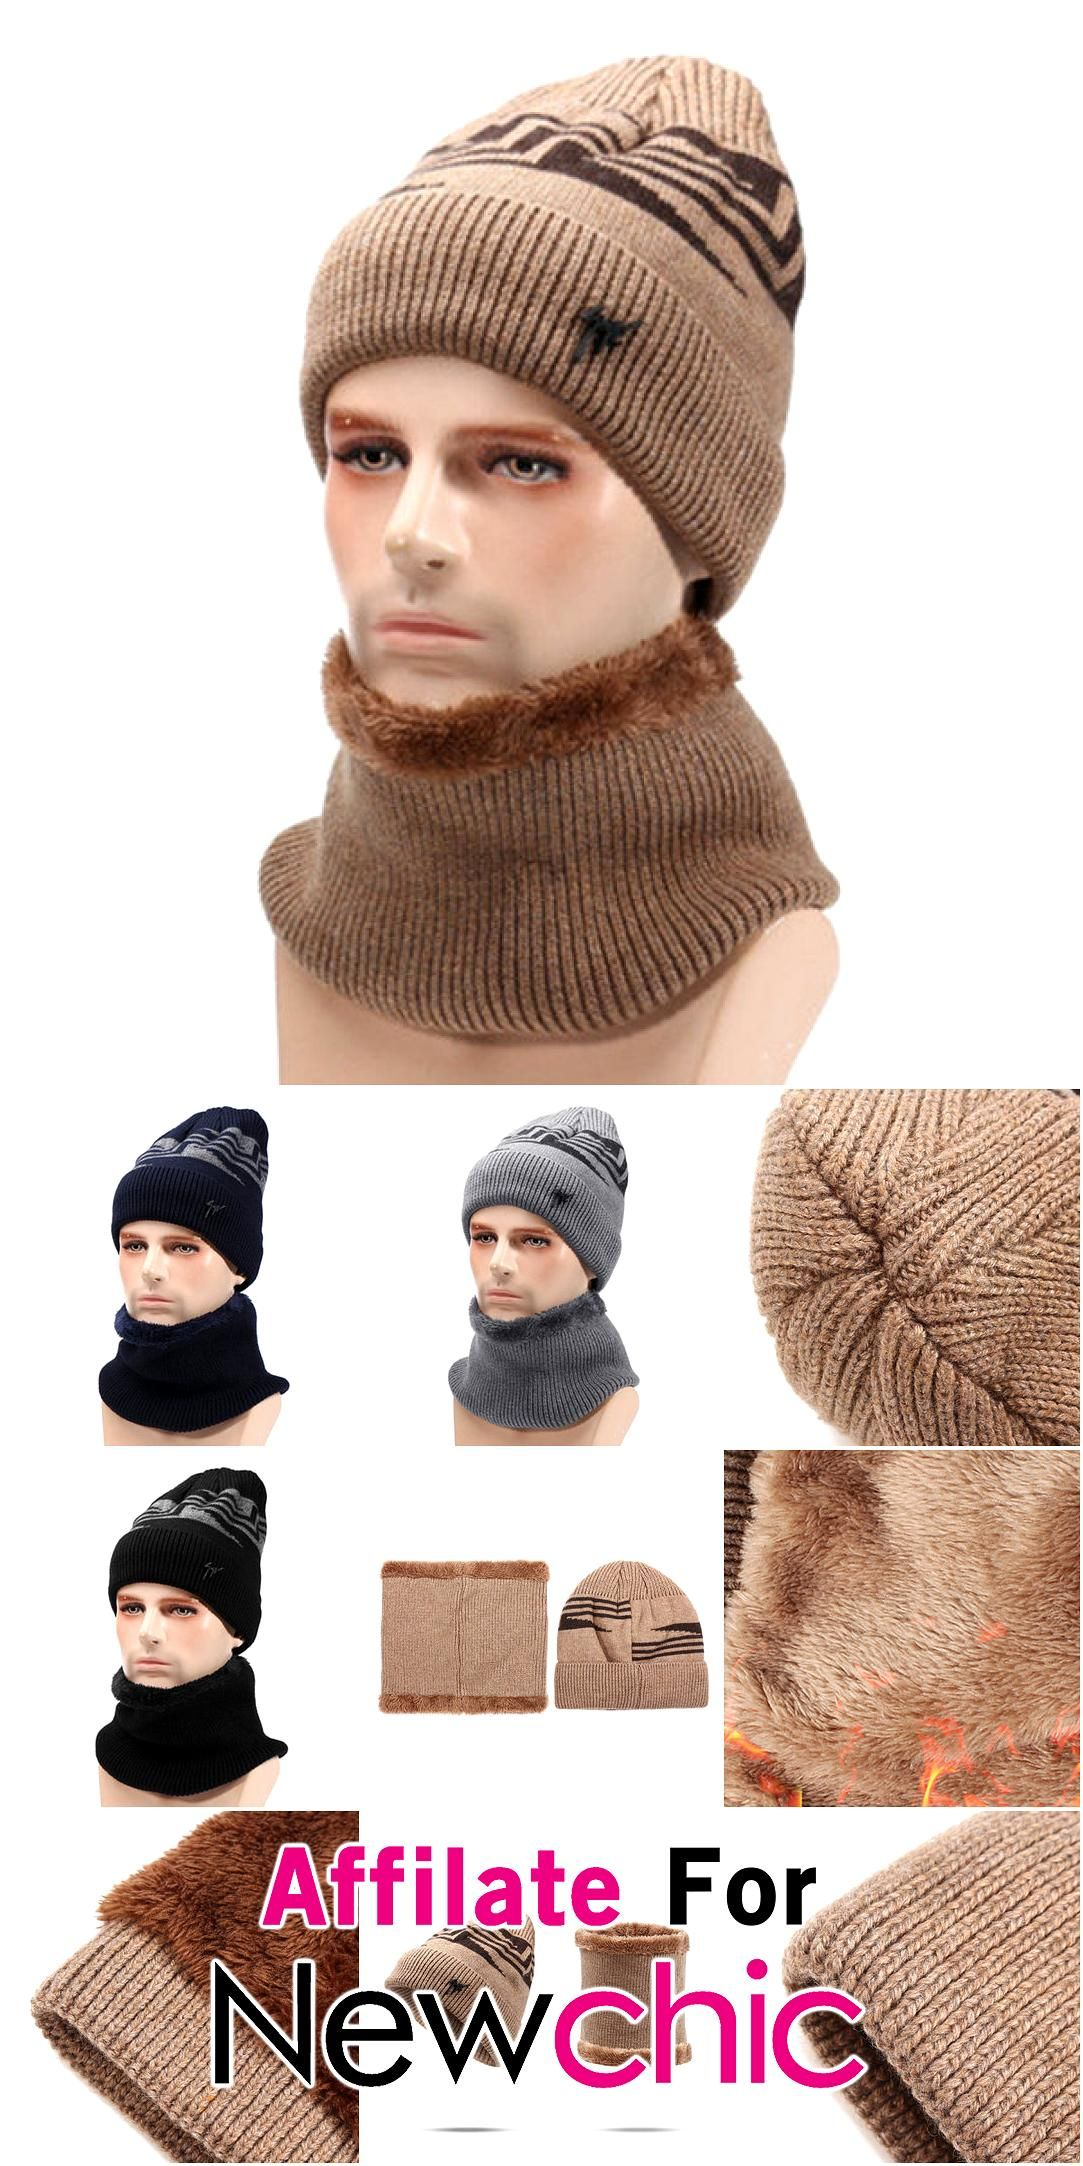 Mens Winter Warm Knit Woolen Face Mask Hat Beanie Cap Outdoors Riding Mask Scarf Hat Dual Use USD 1 Mens Winter Warm Knit Woolen Face Mask Hat Beanie Cap Outdoors Riding...